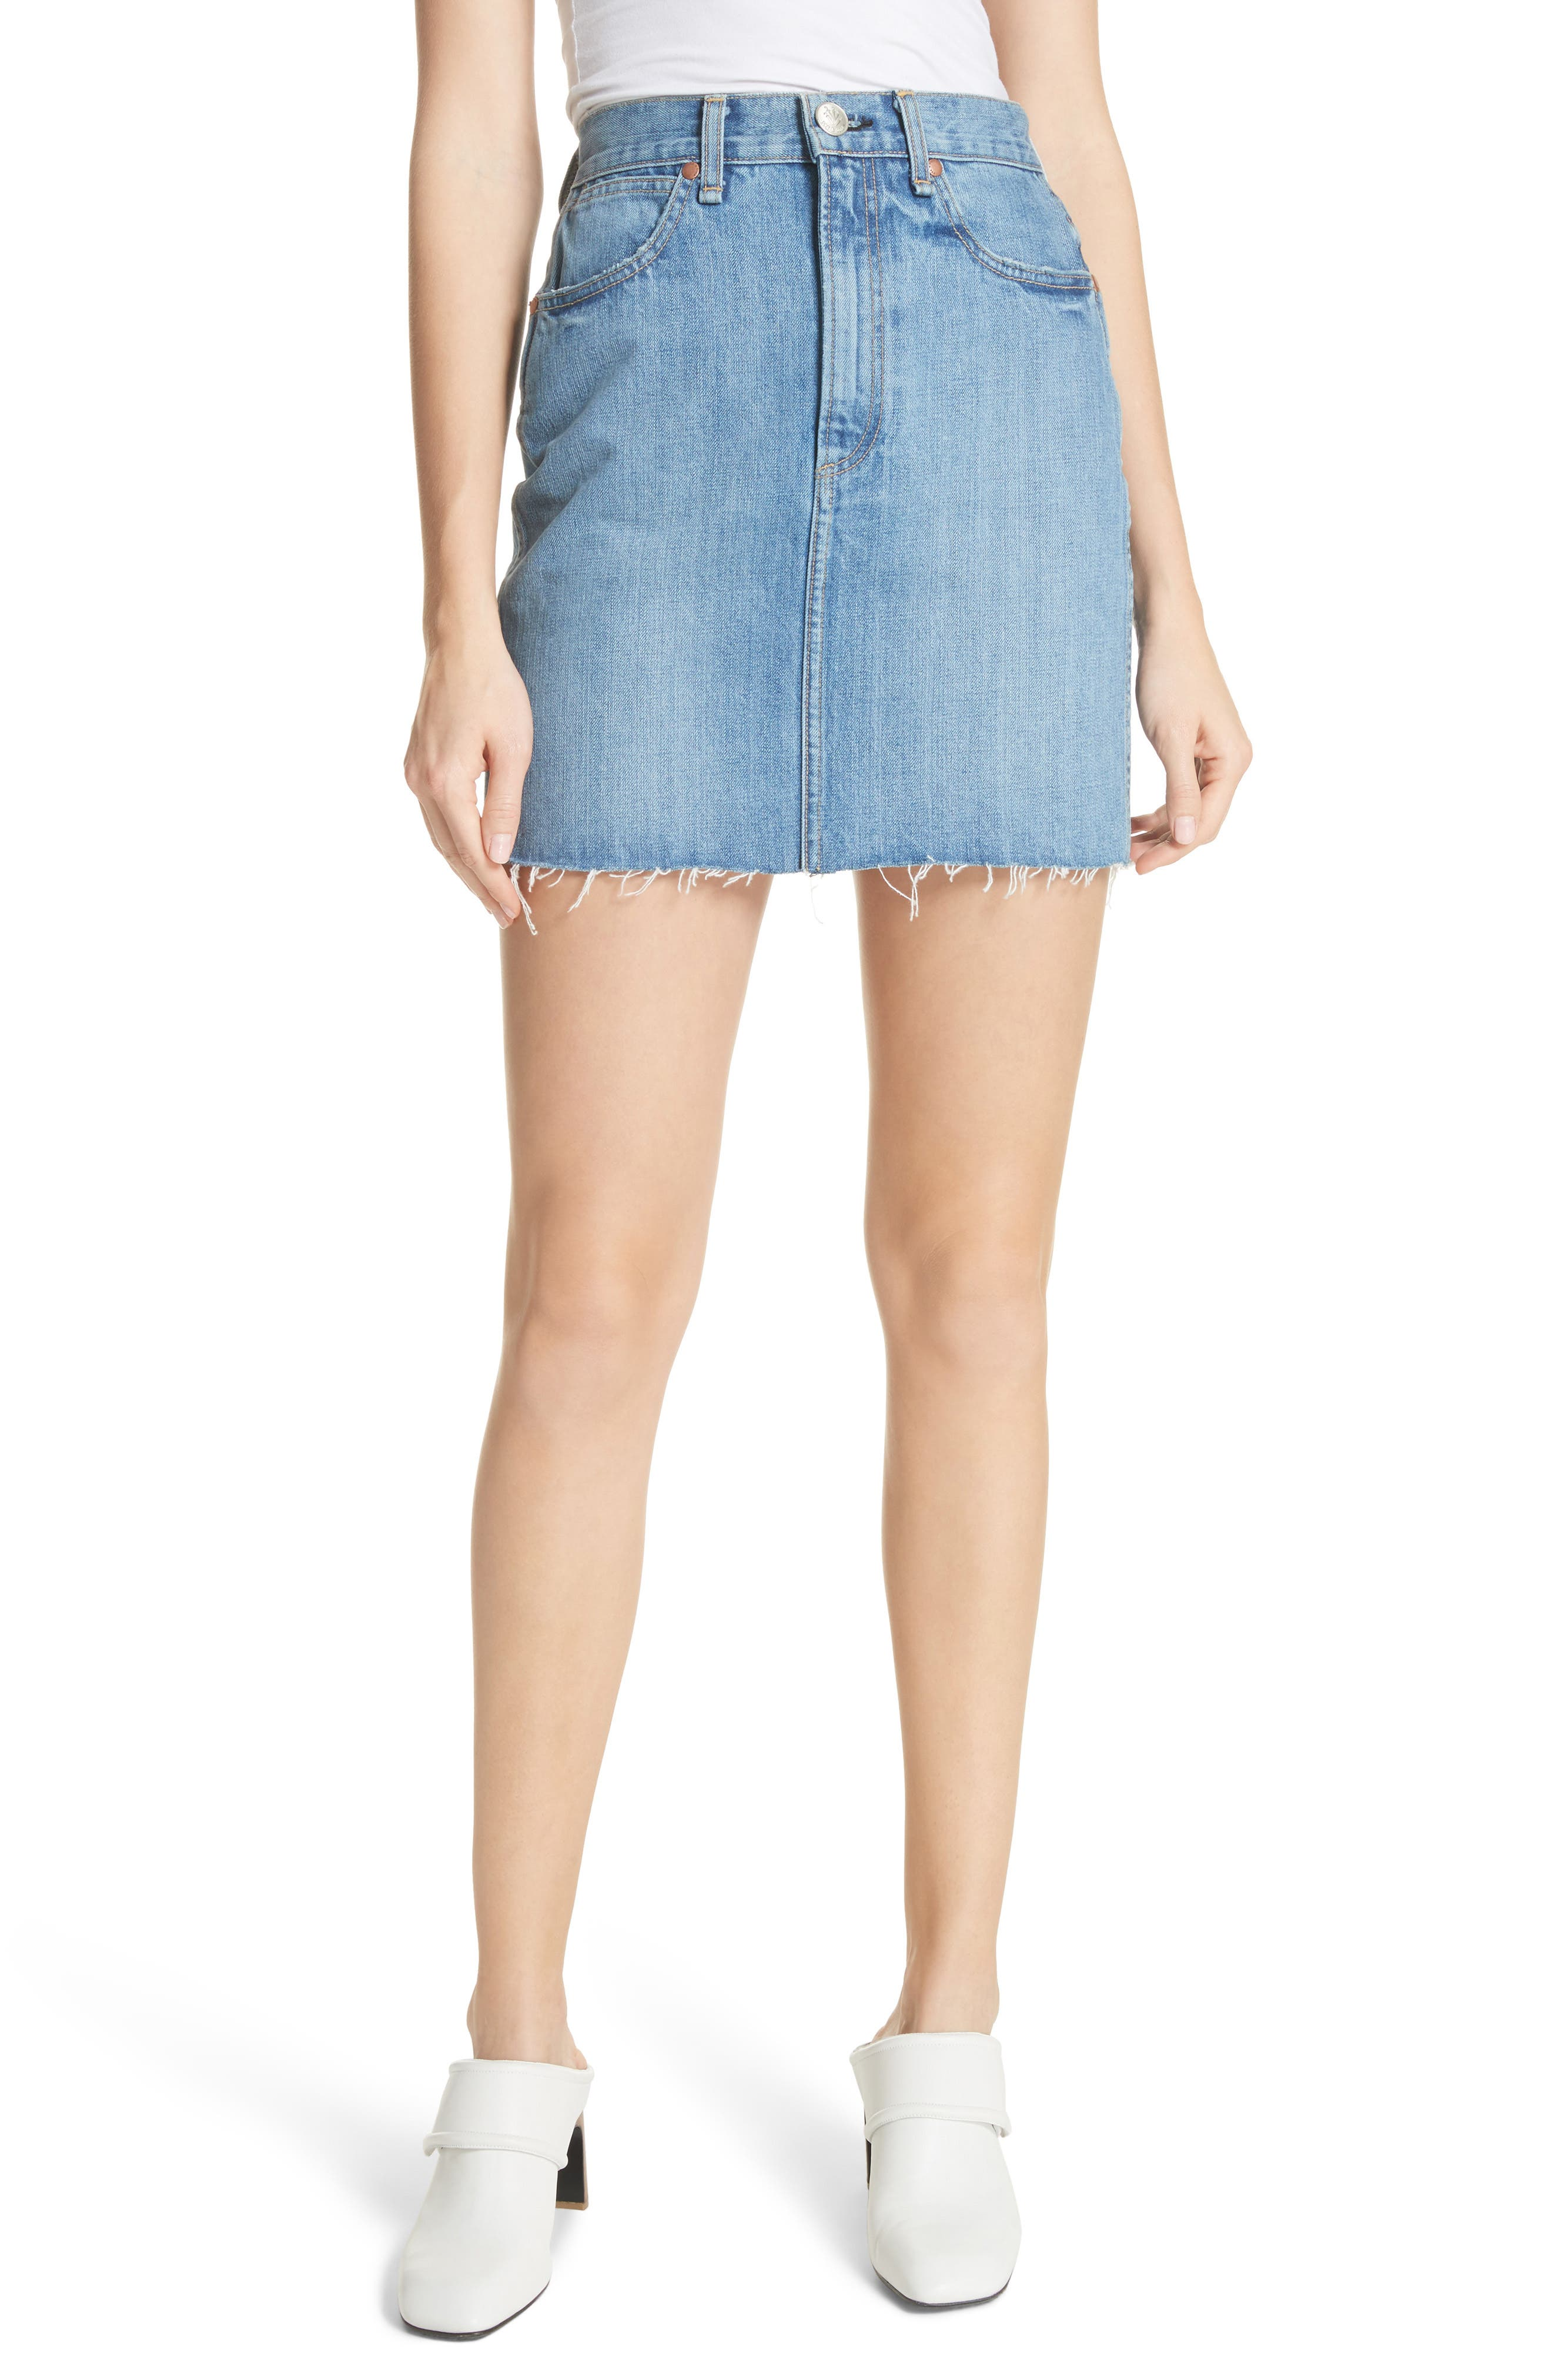 Moss High Waist Denim Miniskirt,                             Main thumbnail 1, color,                             420